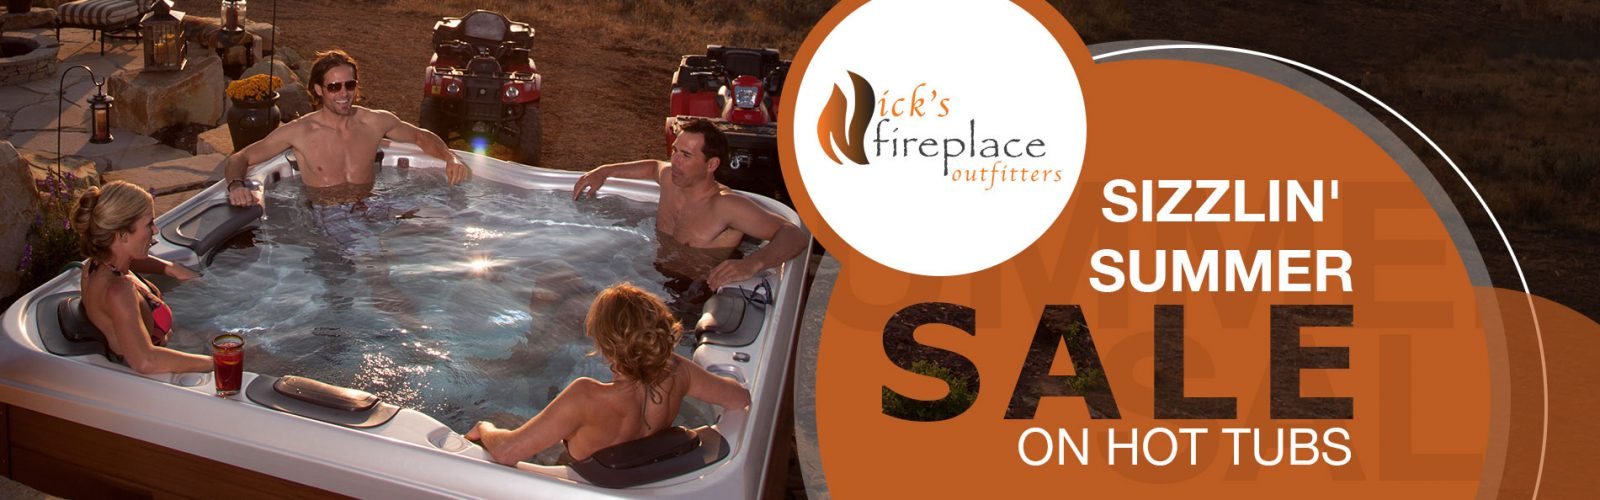 Sizzlin' Summer Sale on Hot Tubs